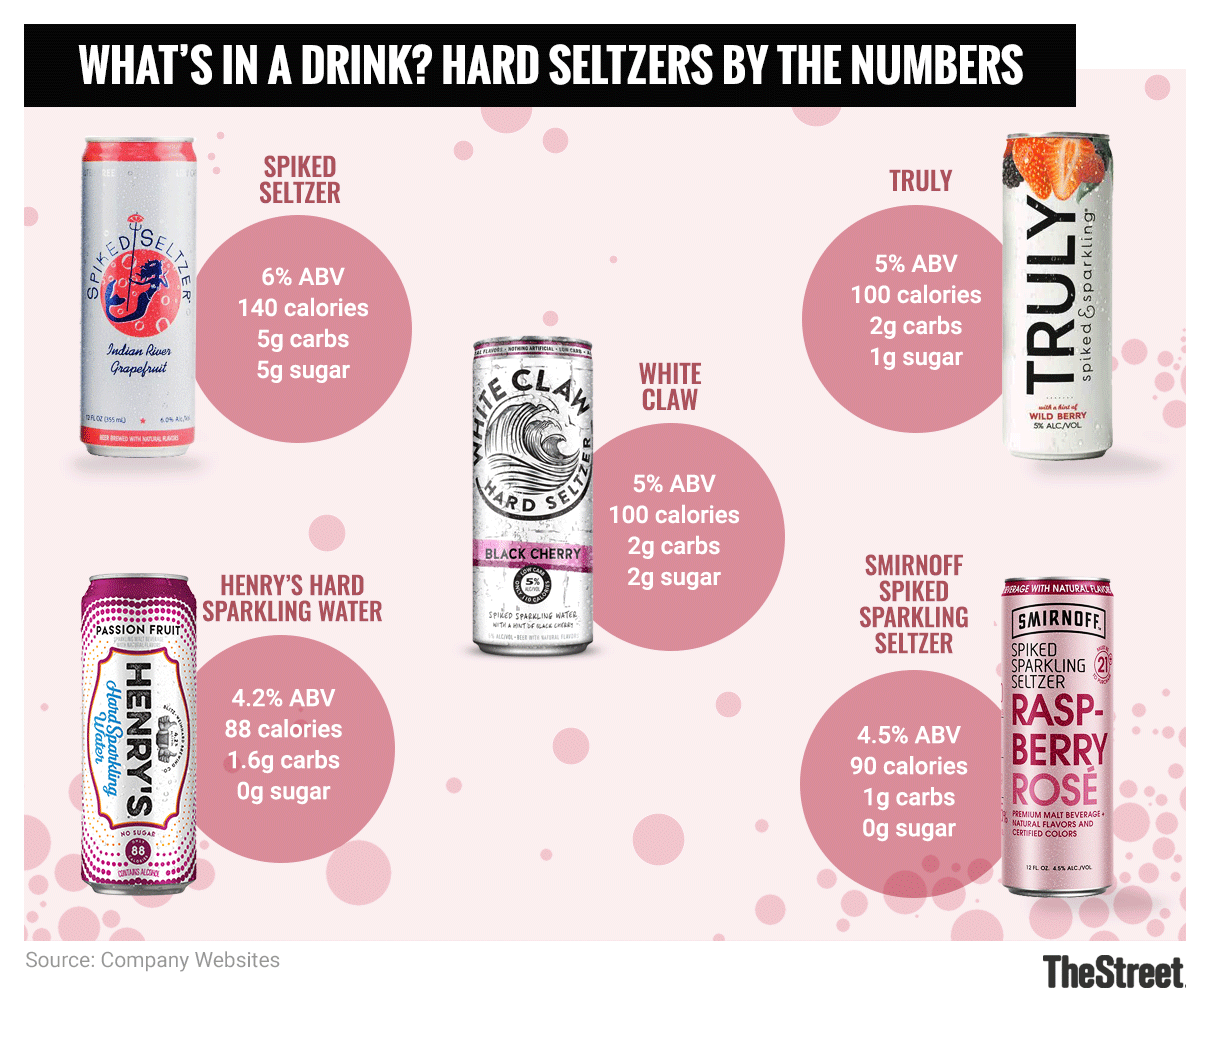 Is This the Summer of Spiked Seltzer? - TheStreet